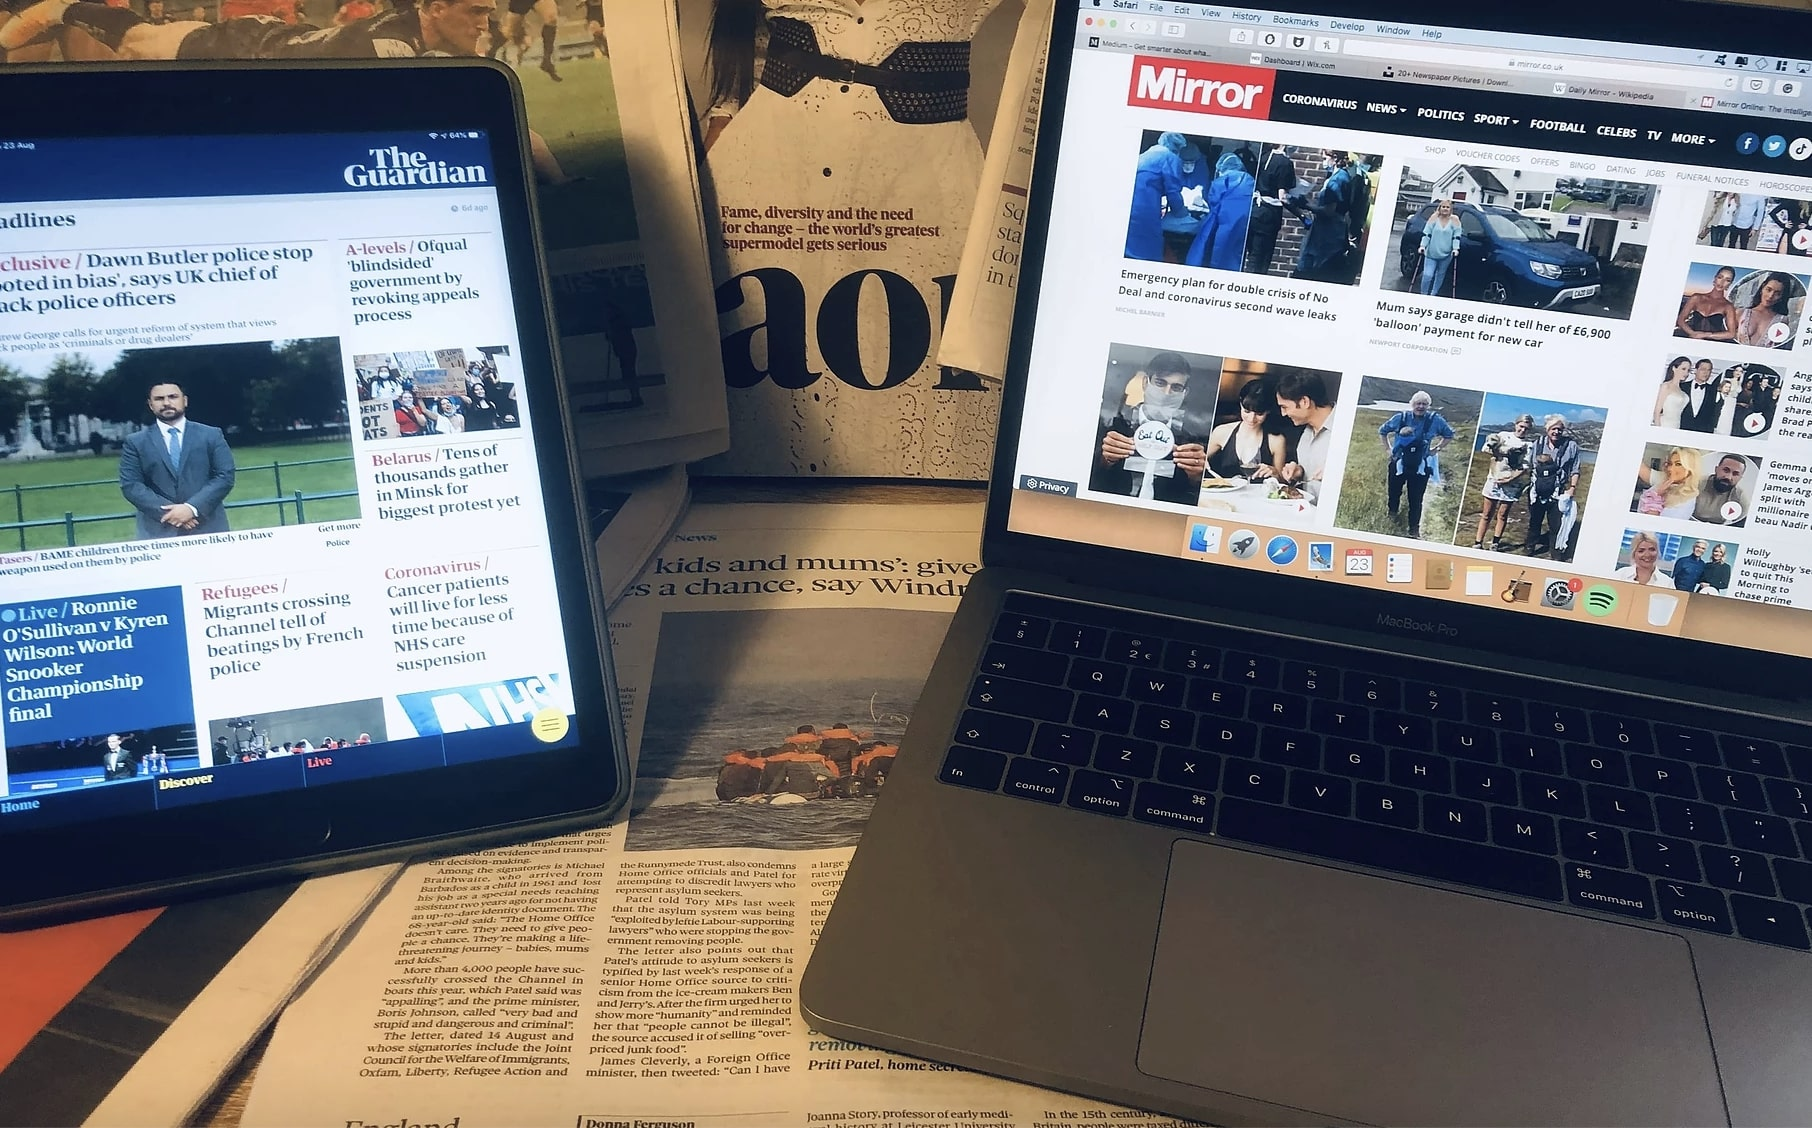 The Impact of Digital News: Will We Eventually Stop Buying Newspapers? - The Detechtor